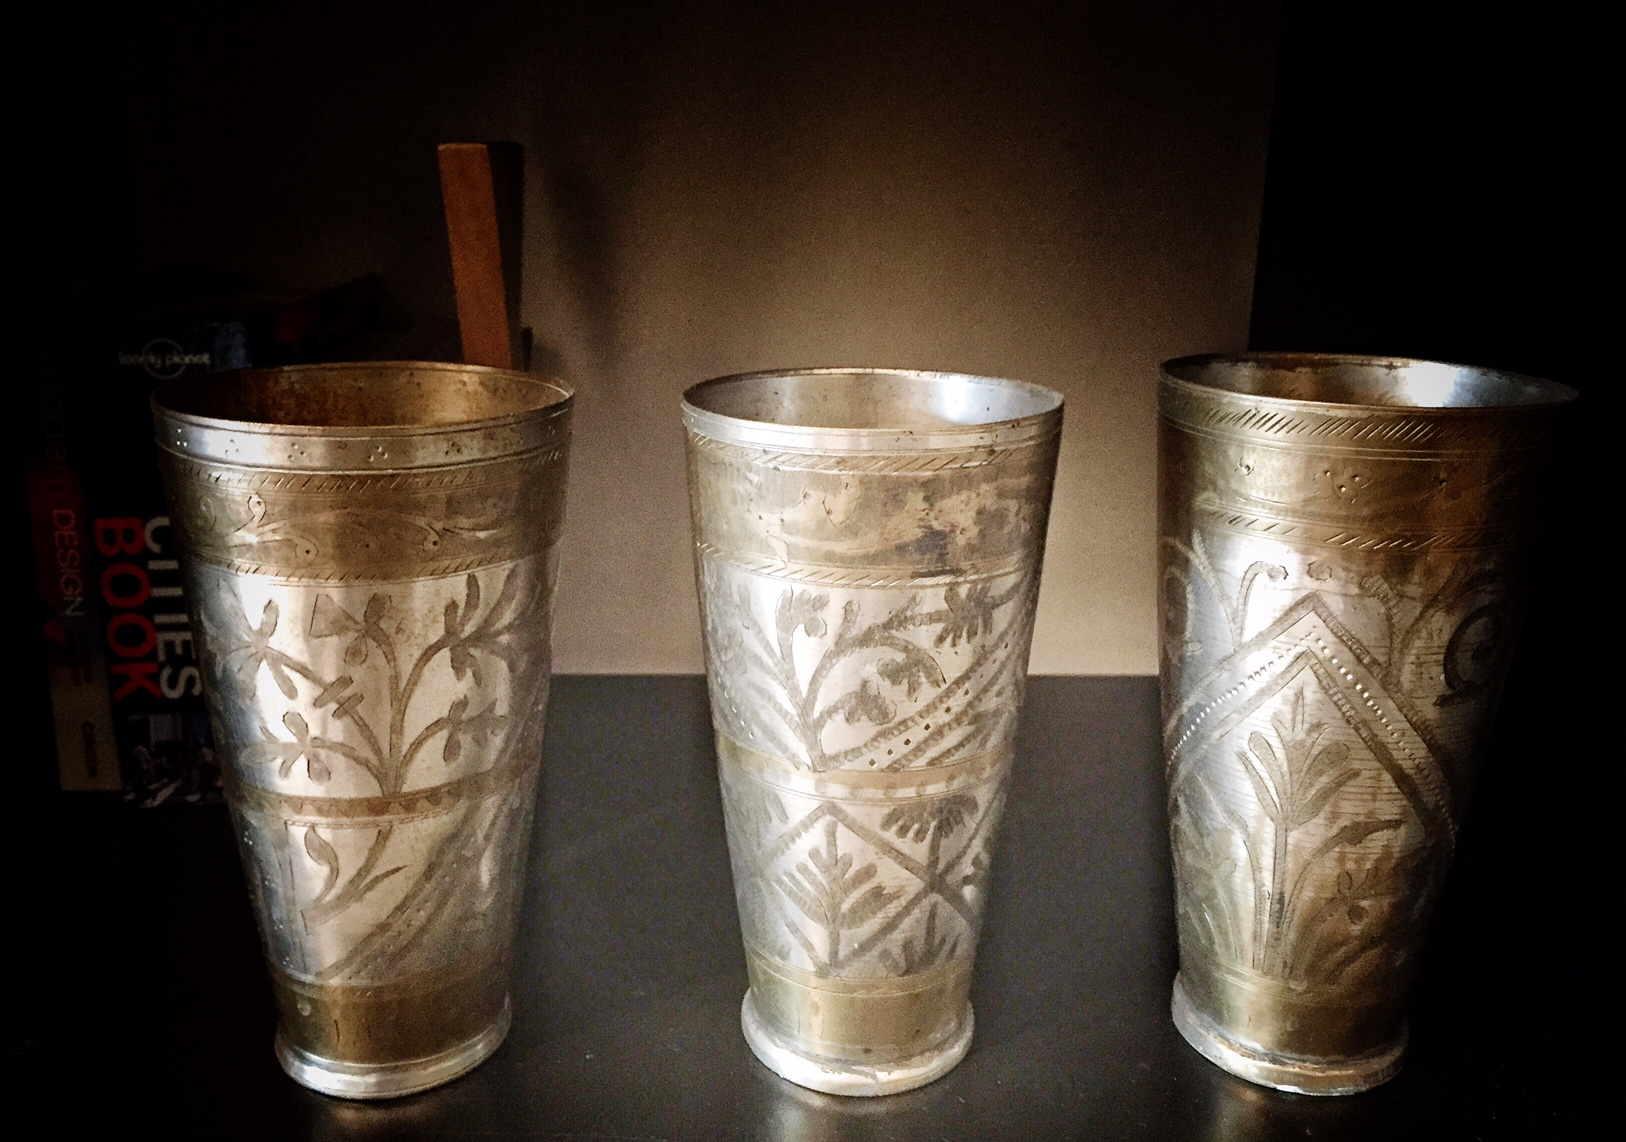 lassi cups from India